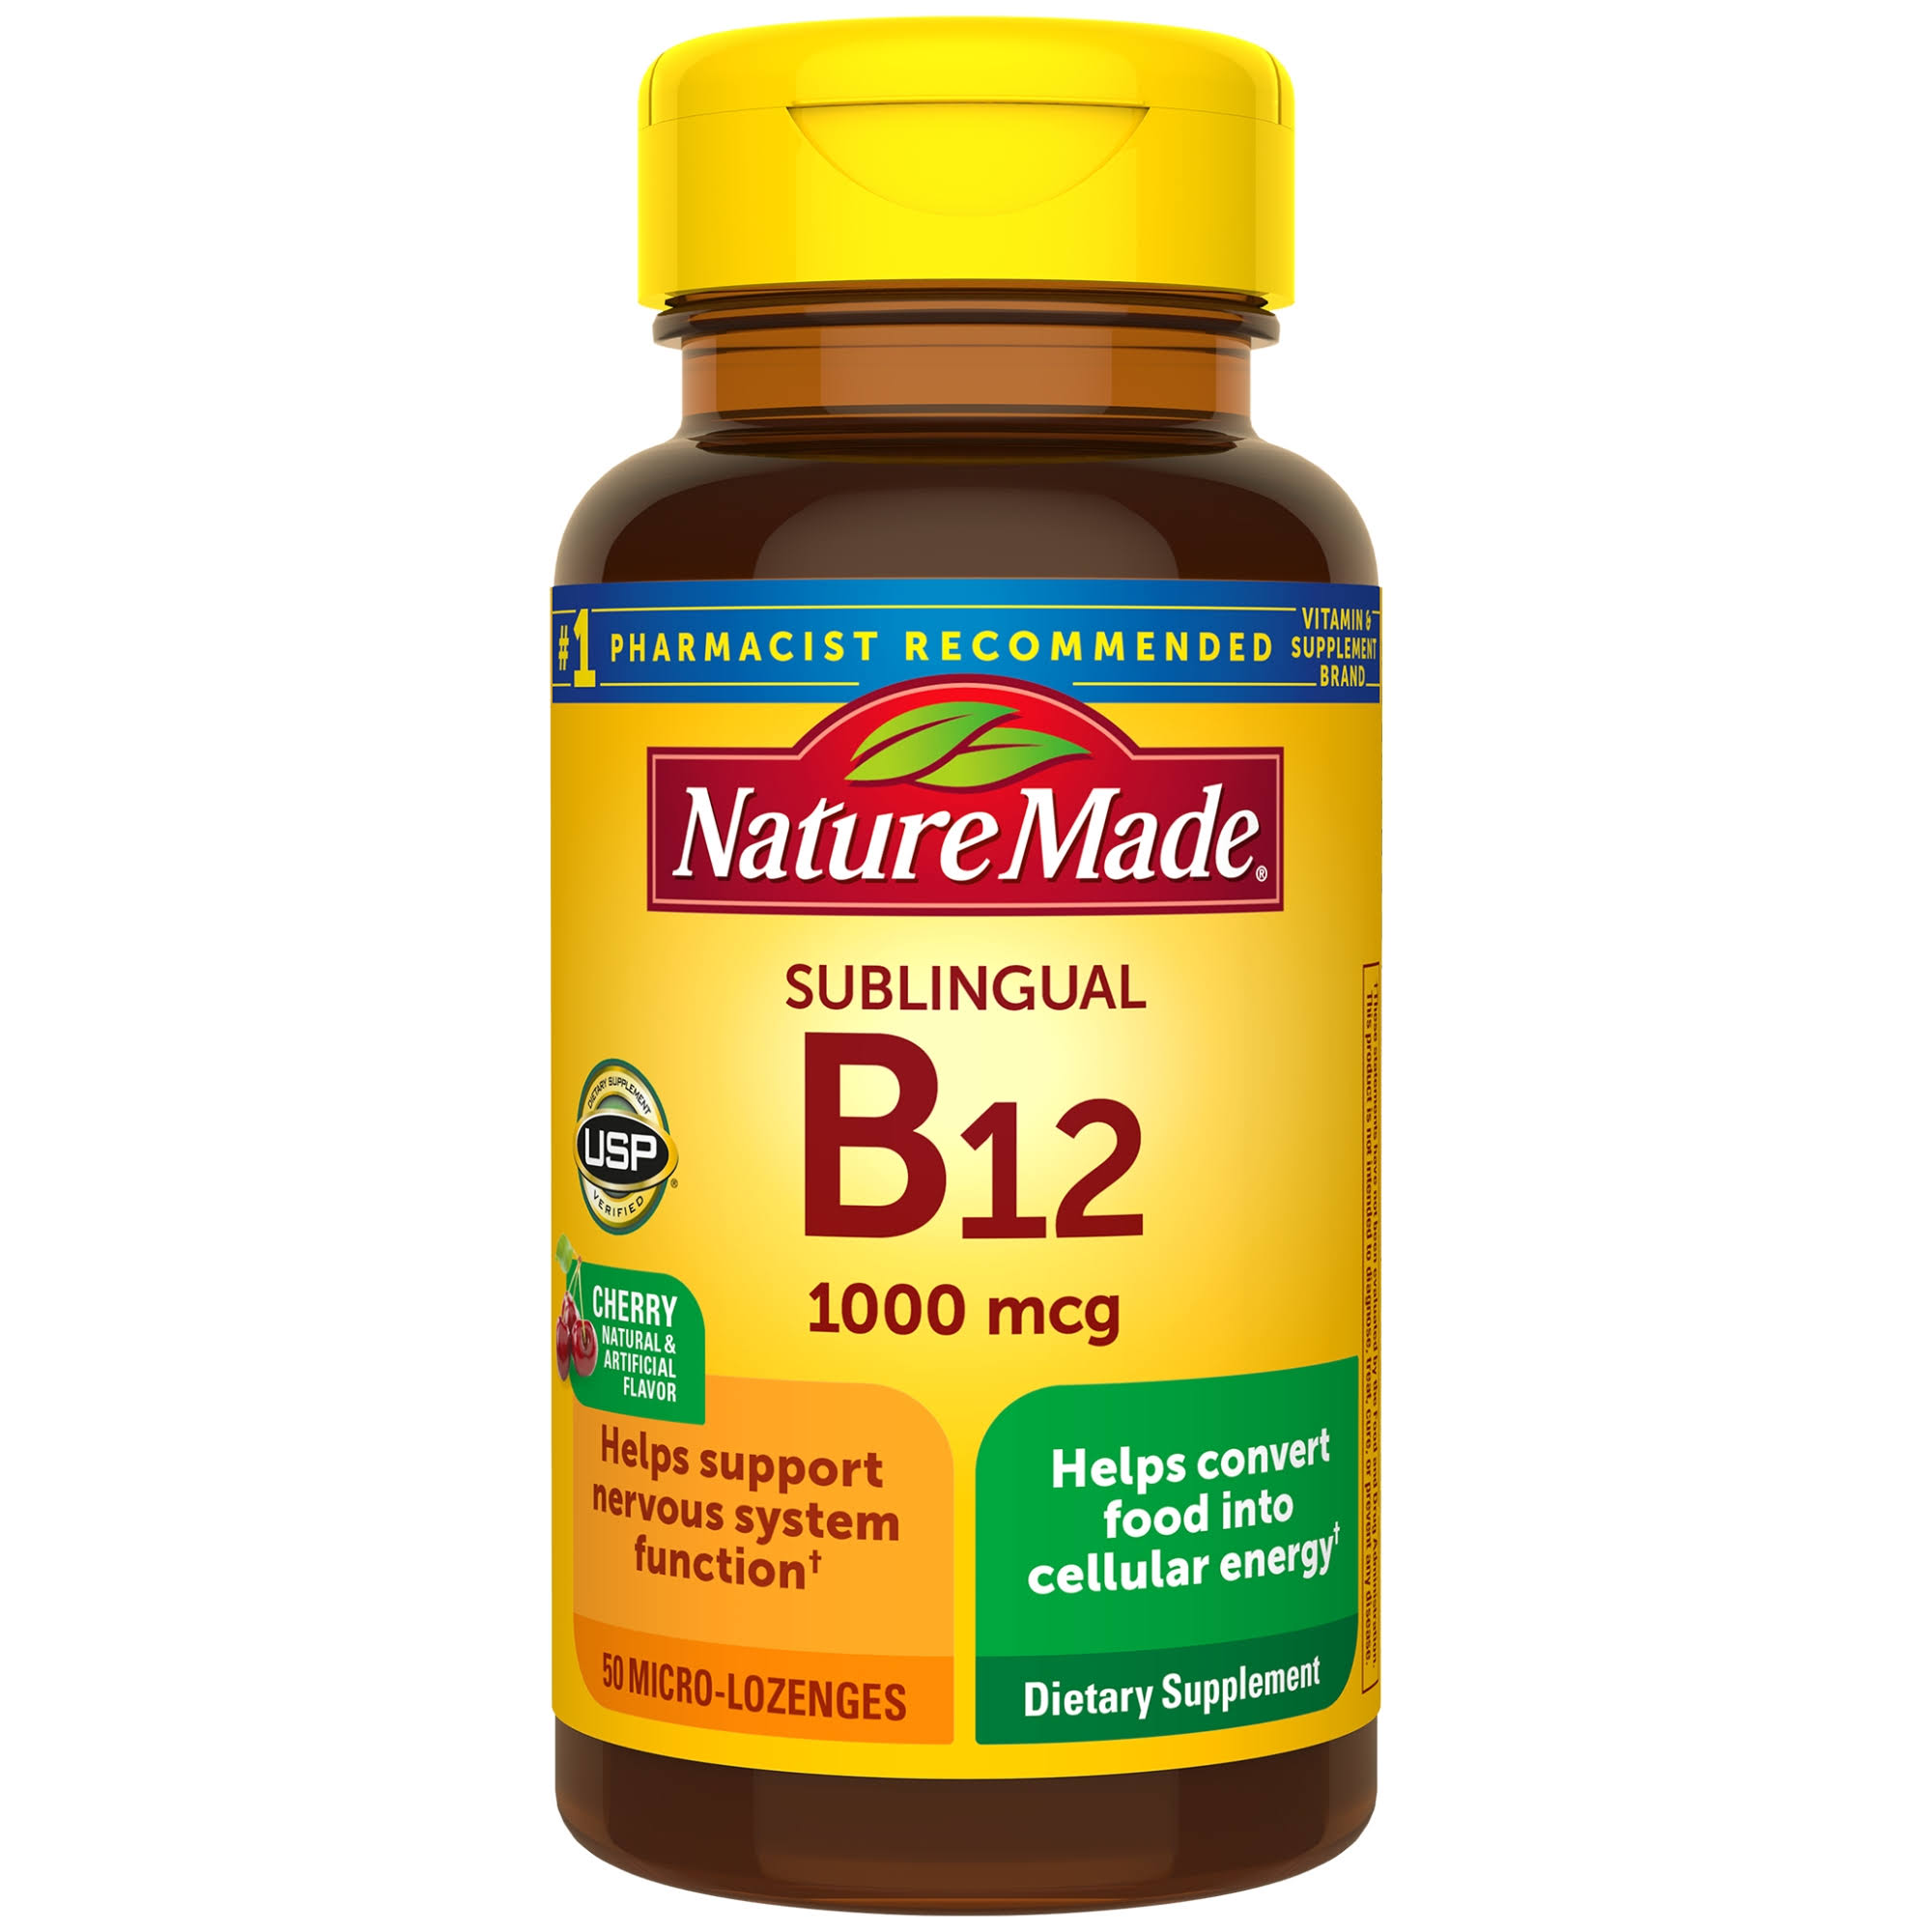 Nature Made Sublingual Vitamin B-12 Supplement - 1000mcg, Cherry, 50 Micro-Lozenges